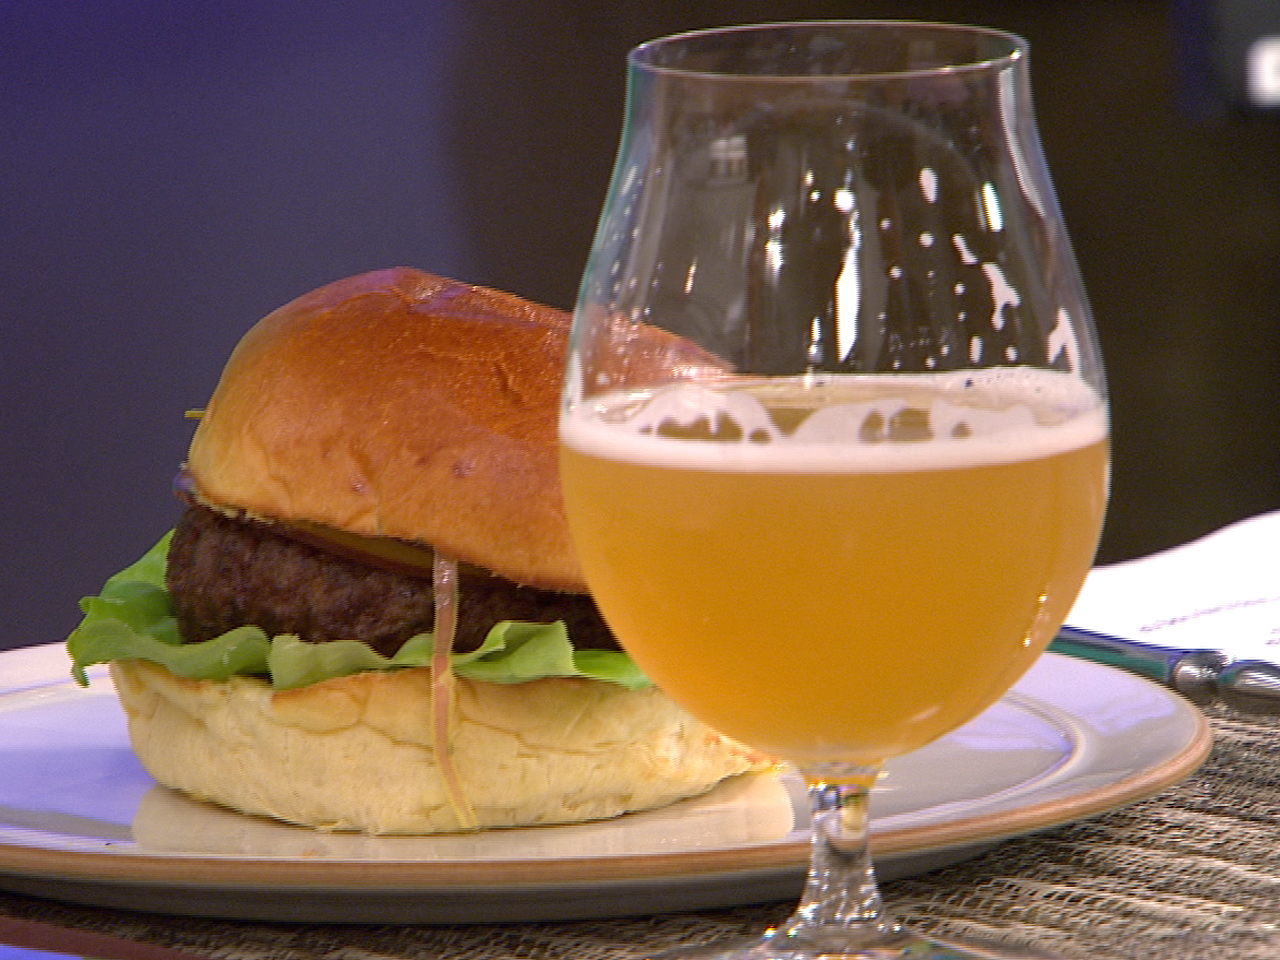 Best beers to pair with burgers, fish, more